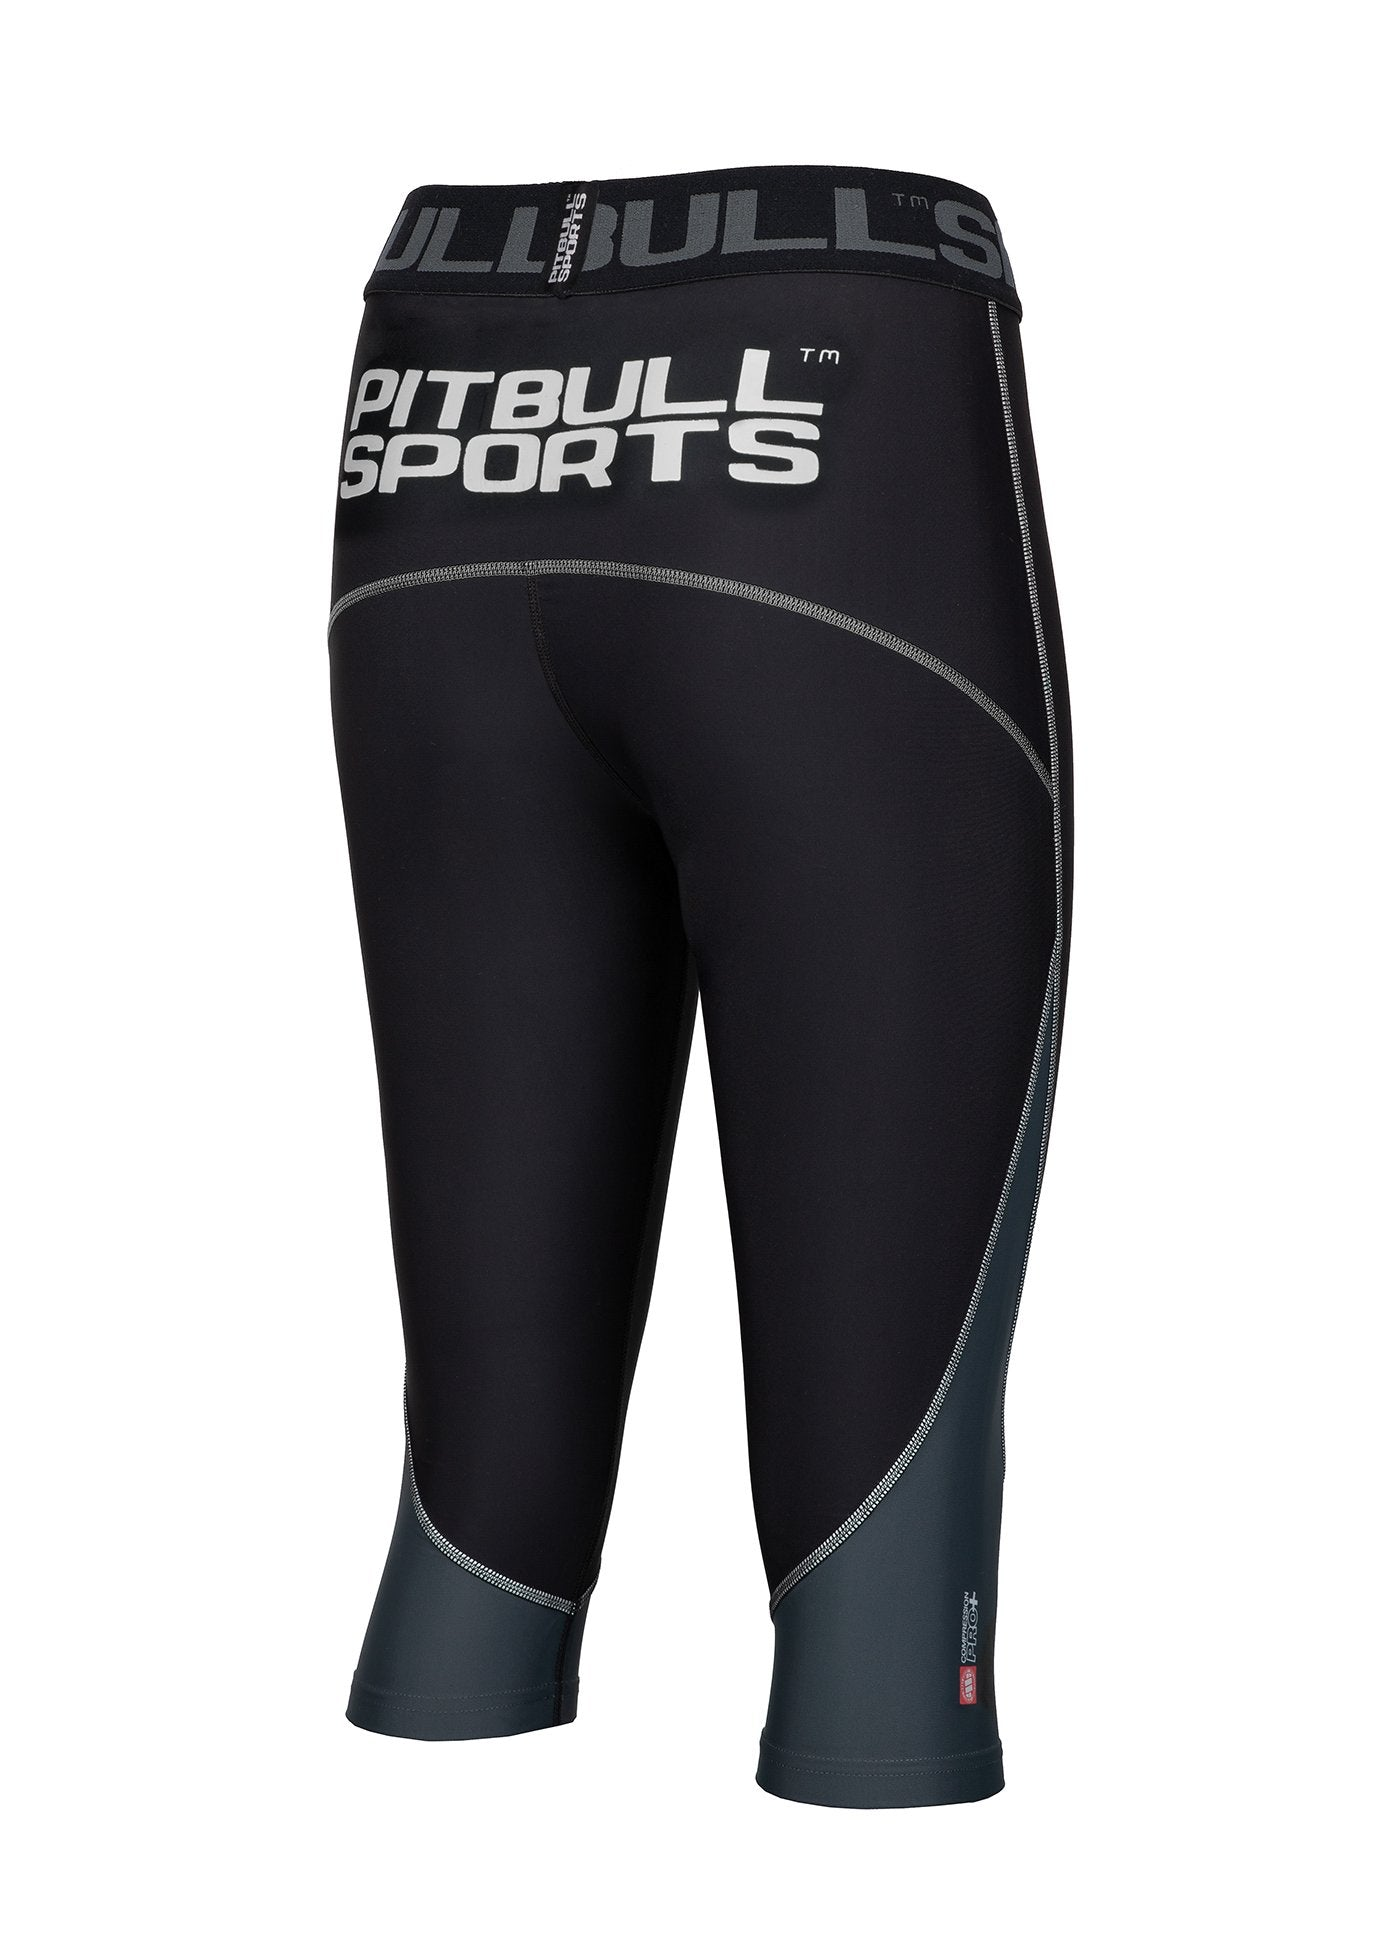 Women's Short Leggins Compression PRO PLUS Black - Pitbull West Coast U.S.A.